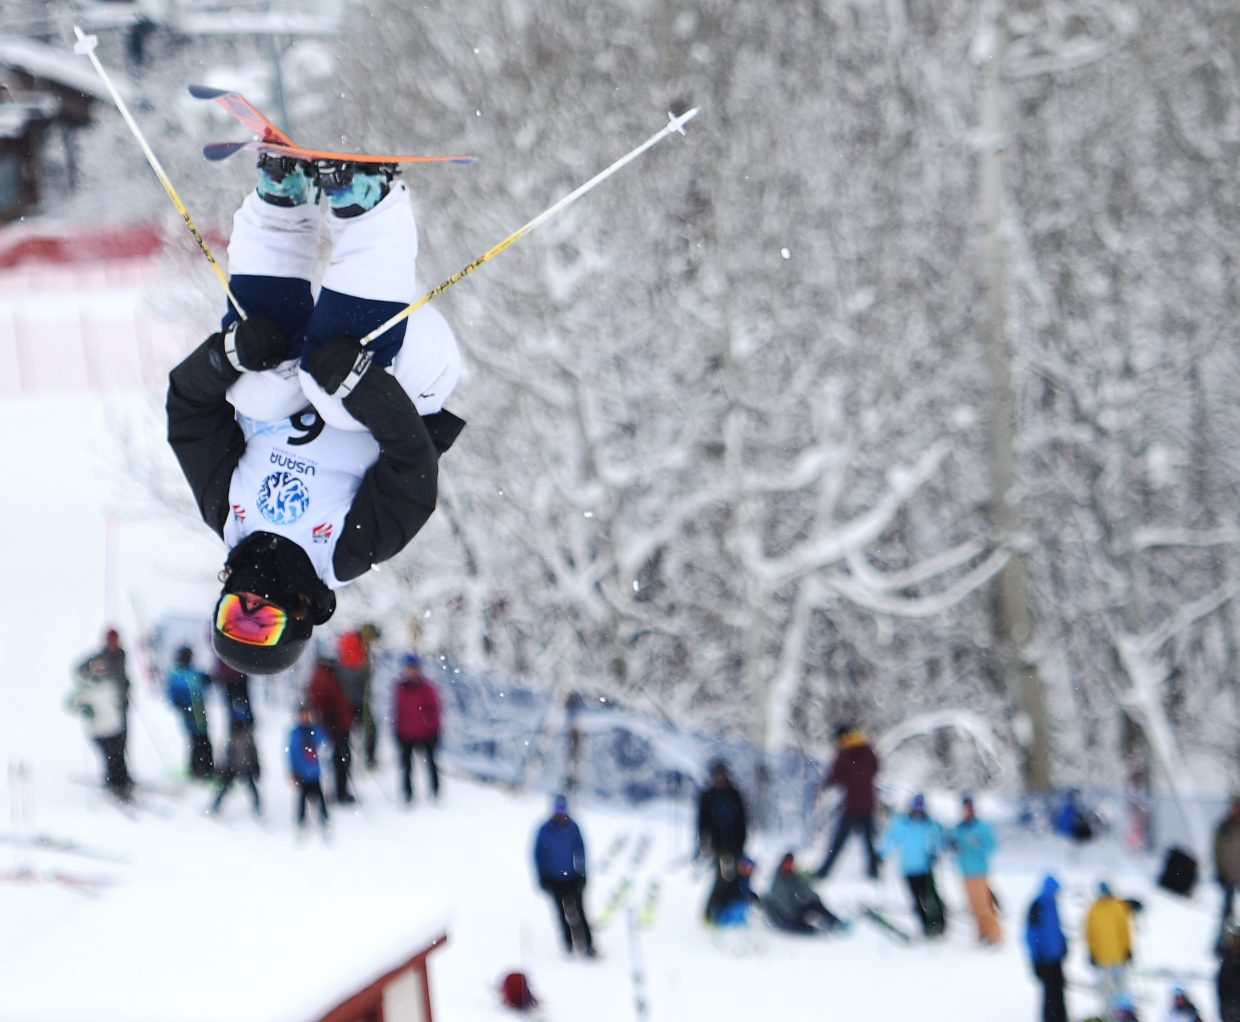 Steamboat's Avital Shimko flips over Voo Doo run during the U.S. Freestyle Skiing Championships in Steamboat Springs.